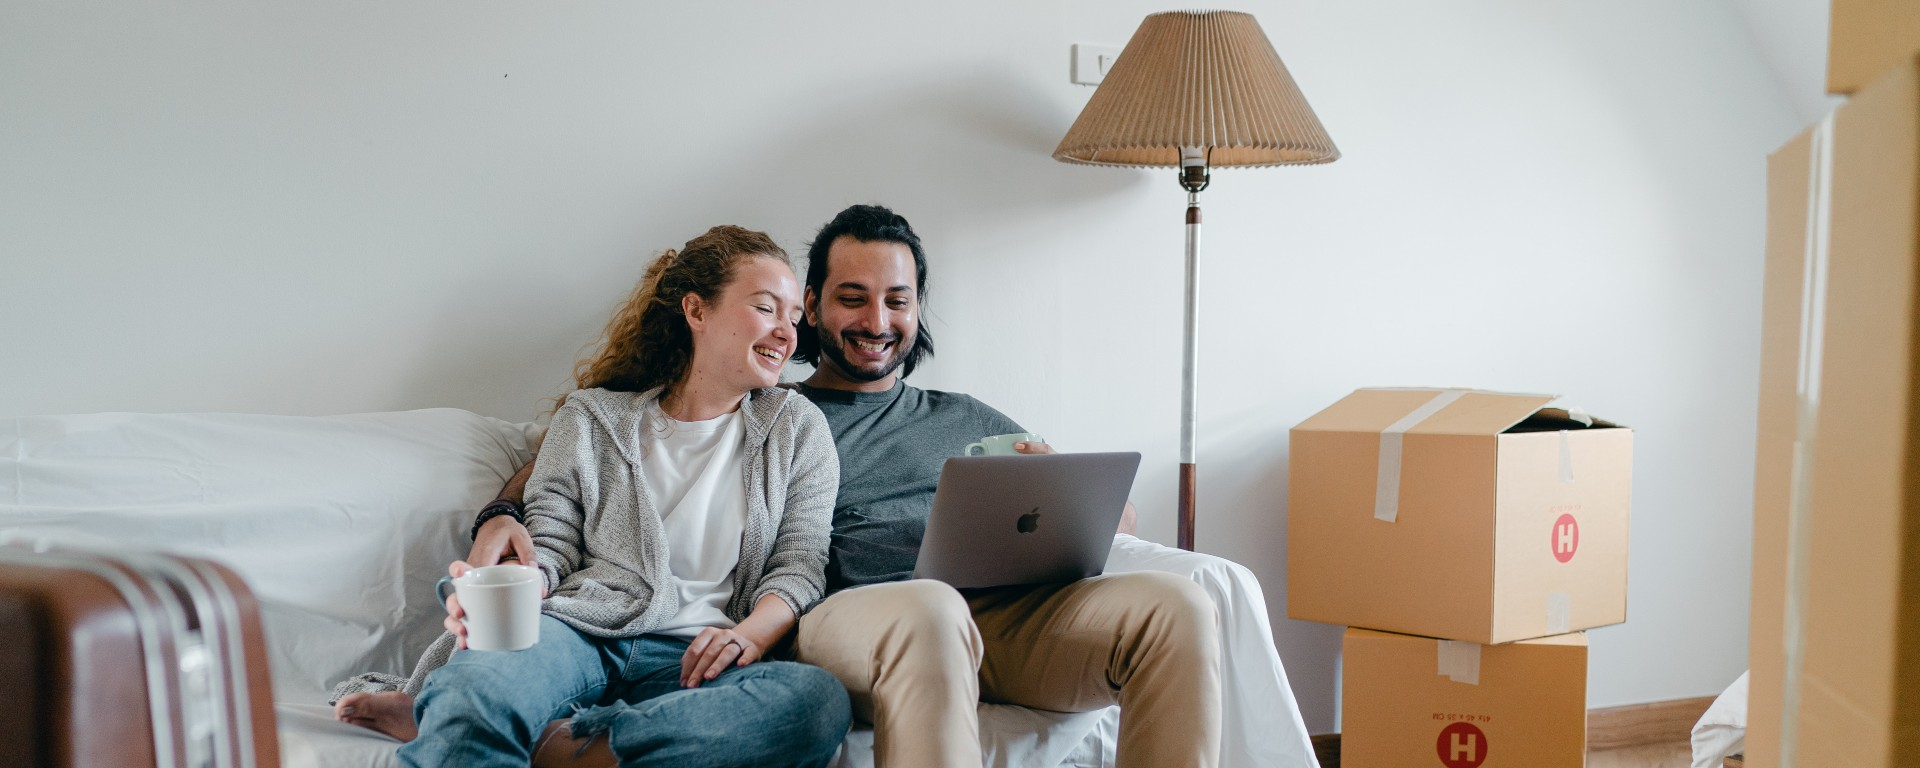 cohabiting partners moving in together to a new home